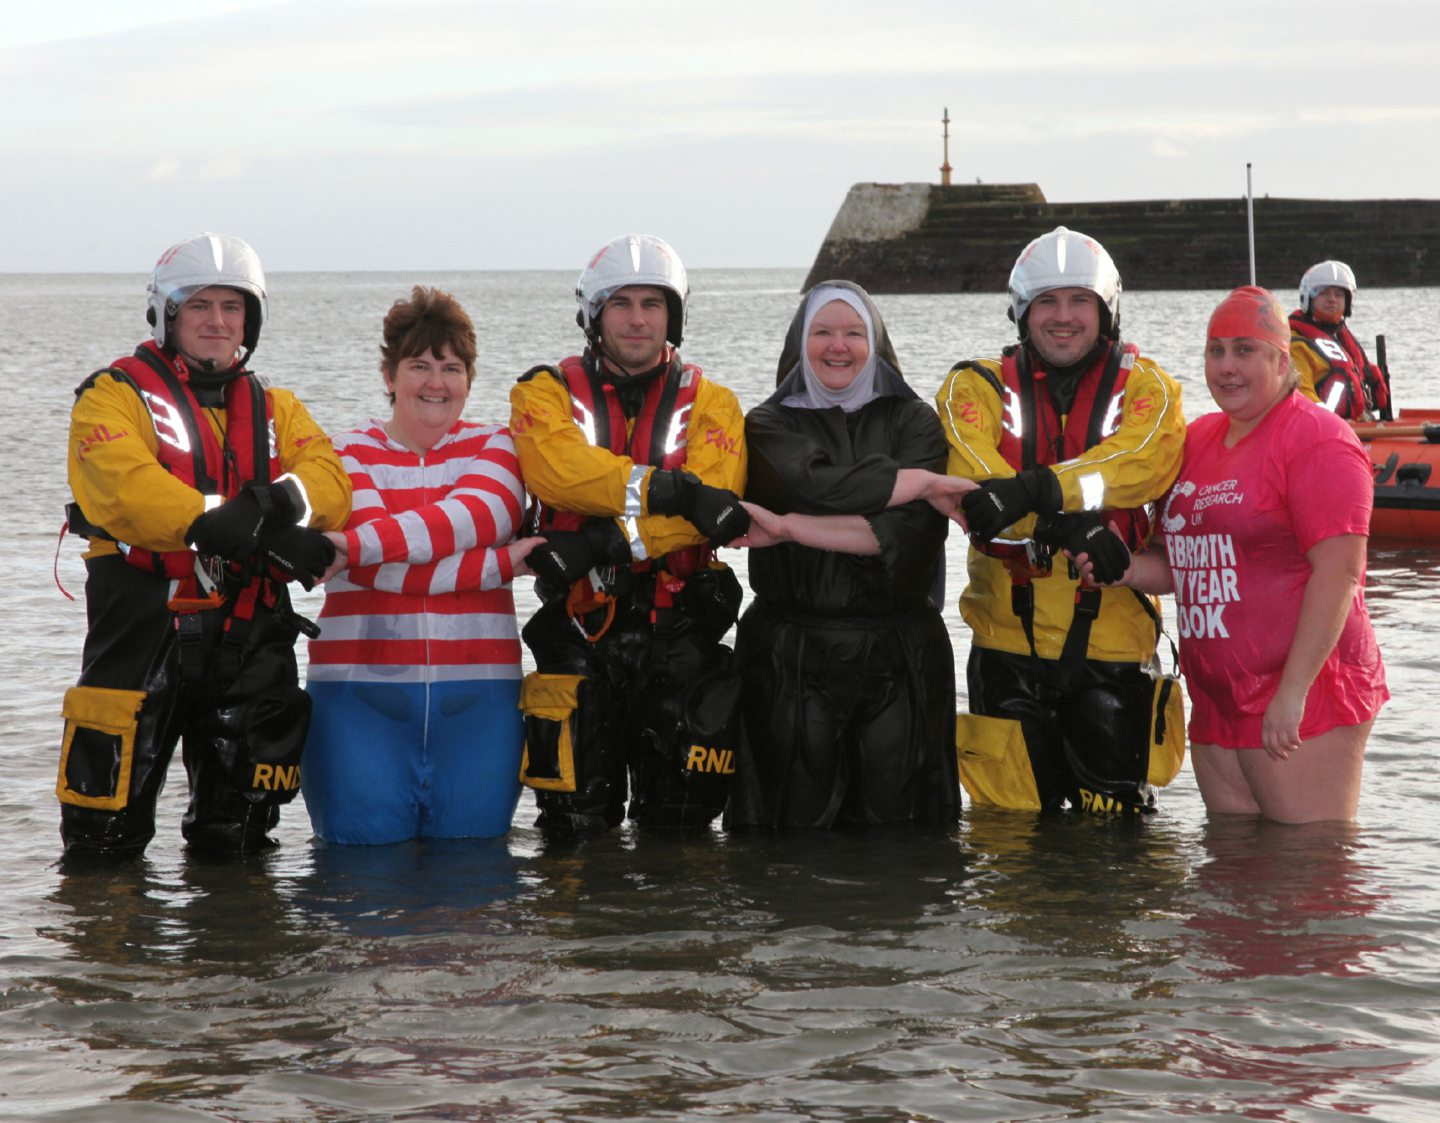 The RNLI team at Arbroath with some of those who took to the water in 2019.